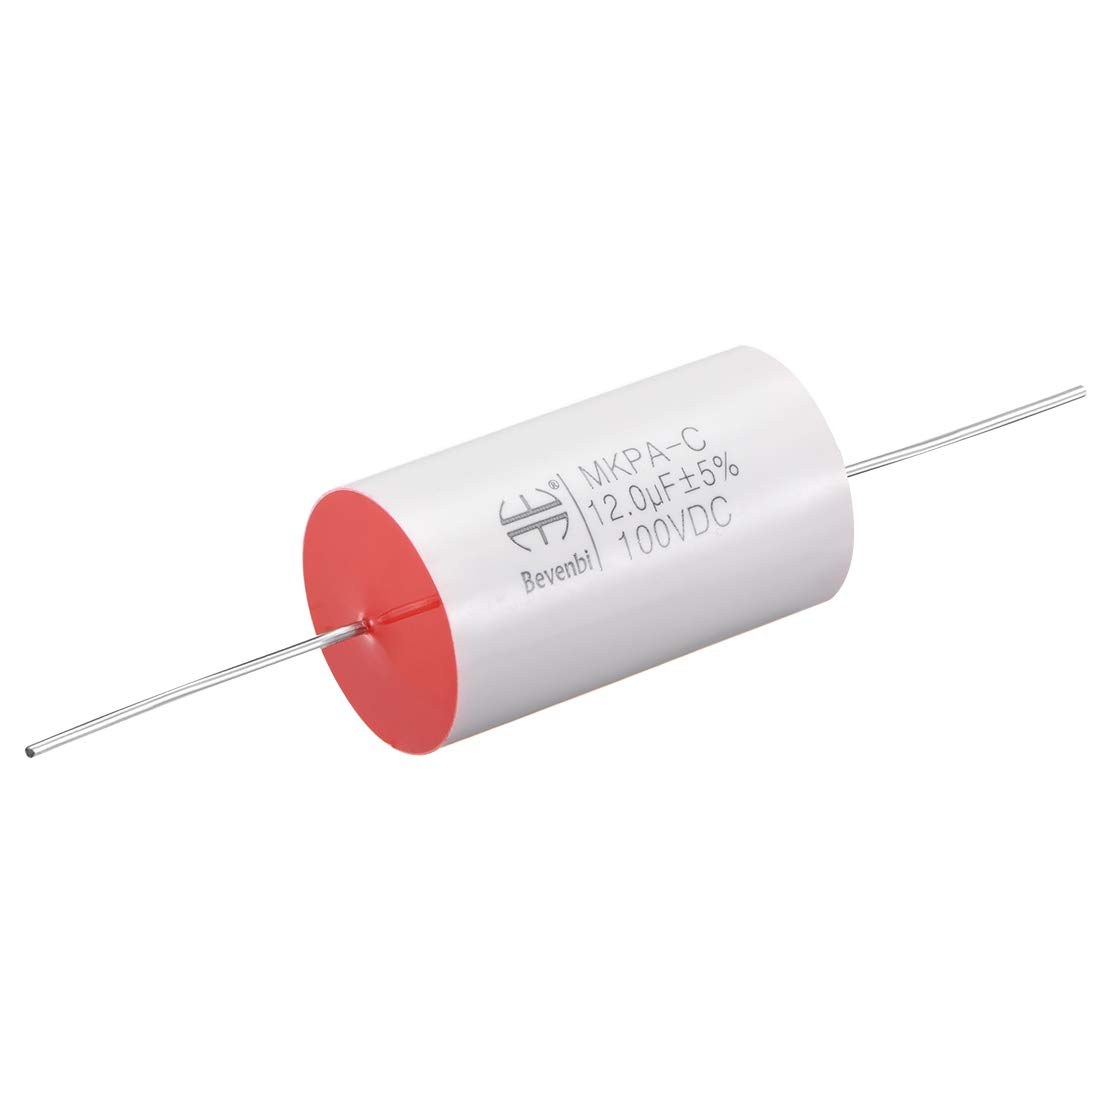 uxcell Film Capacitor 250V DC 20.0uF Round Axial Polypropylene Film Capacitor for Audio Divider